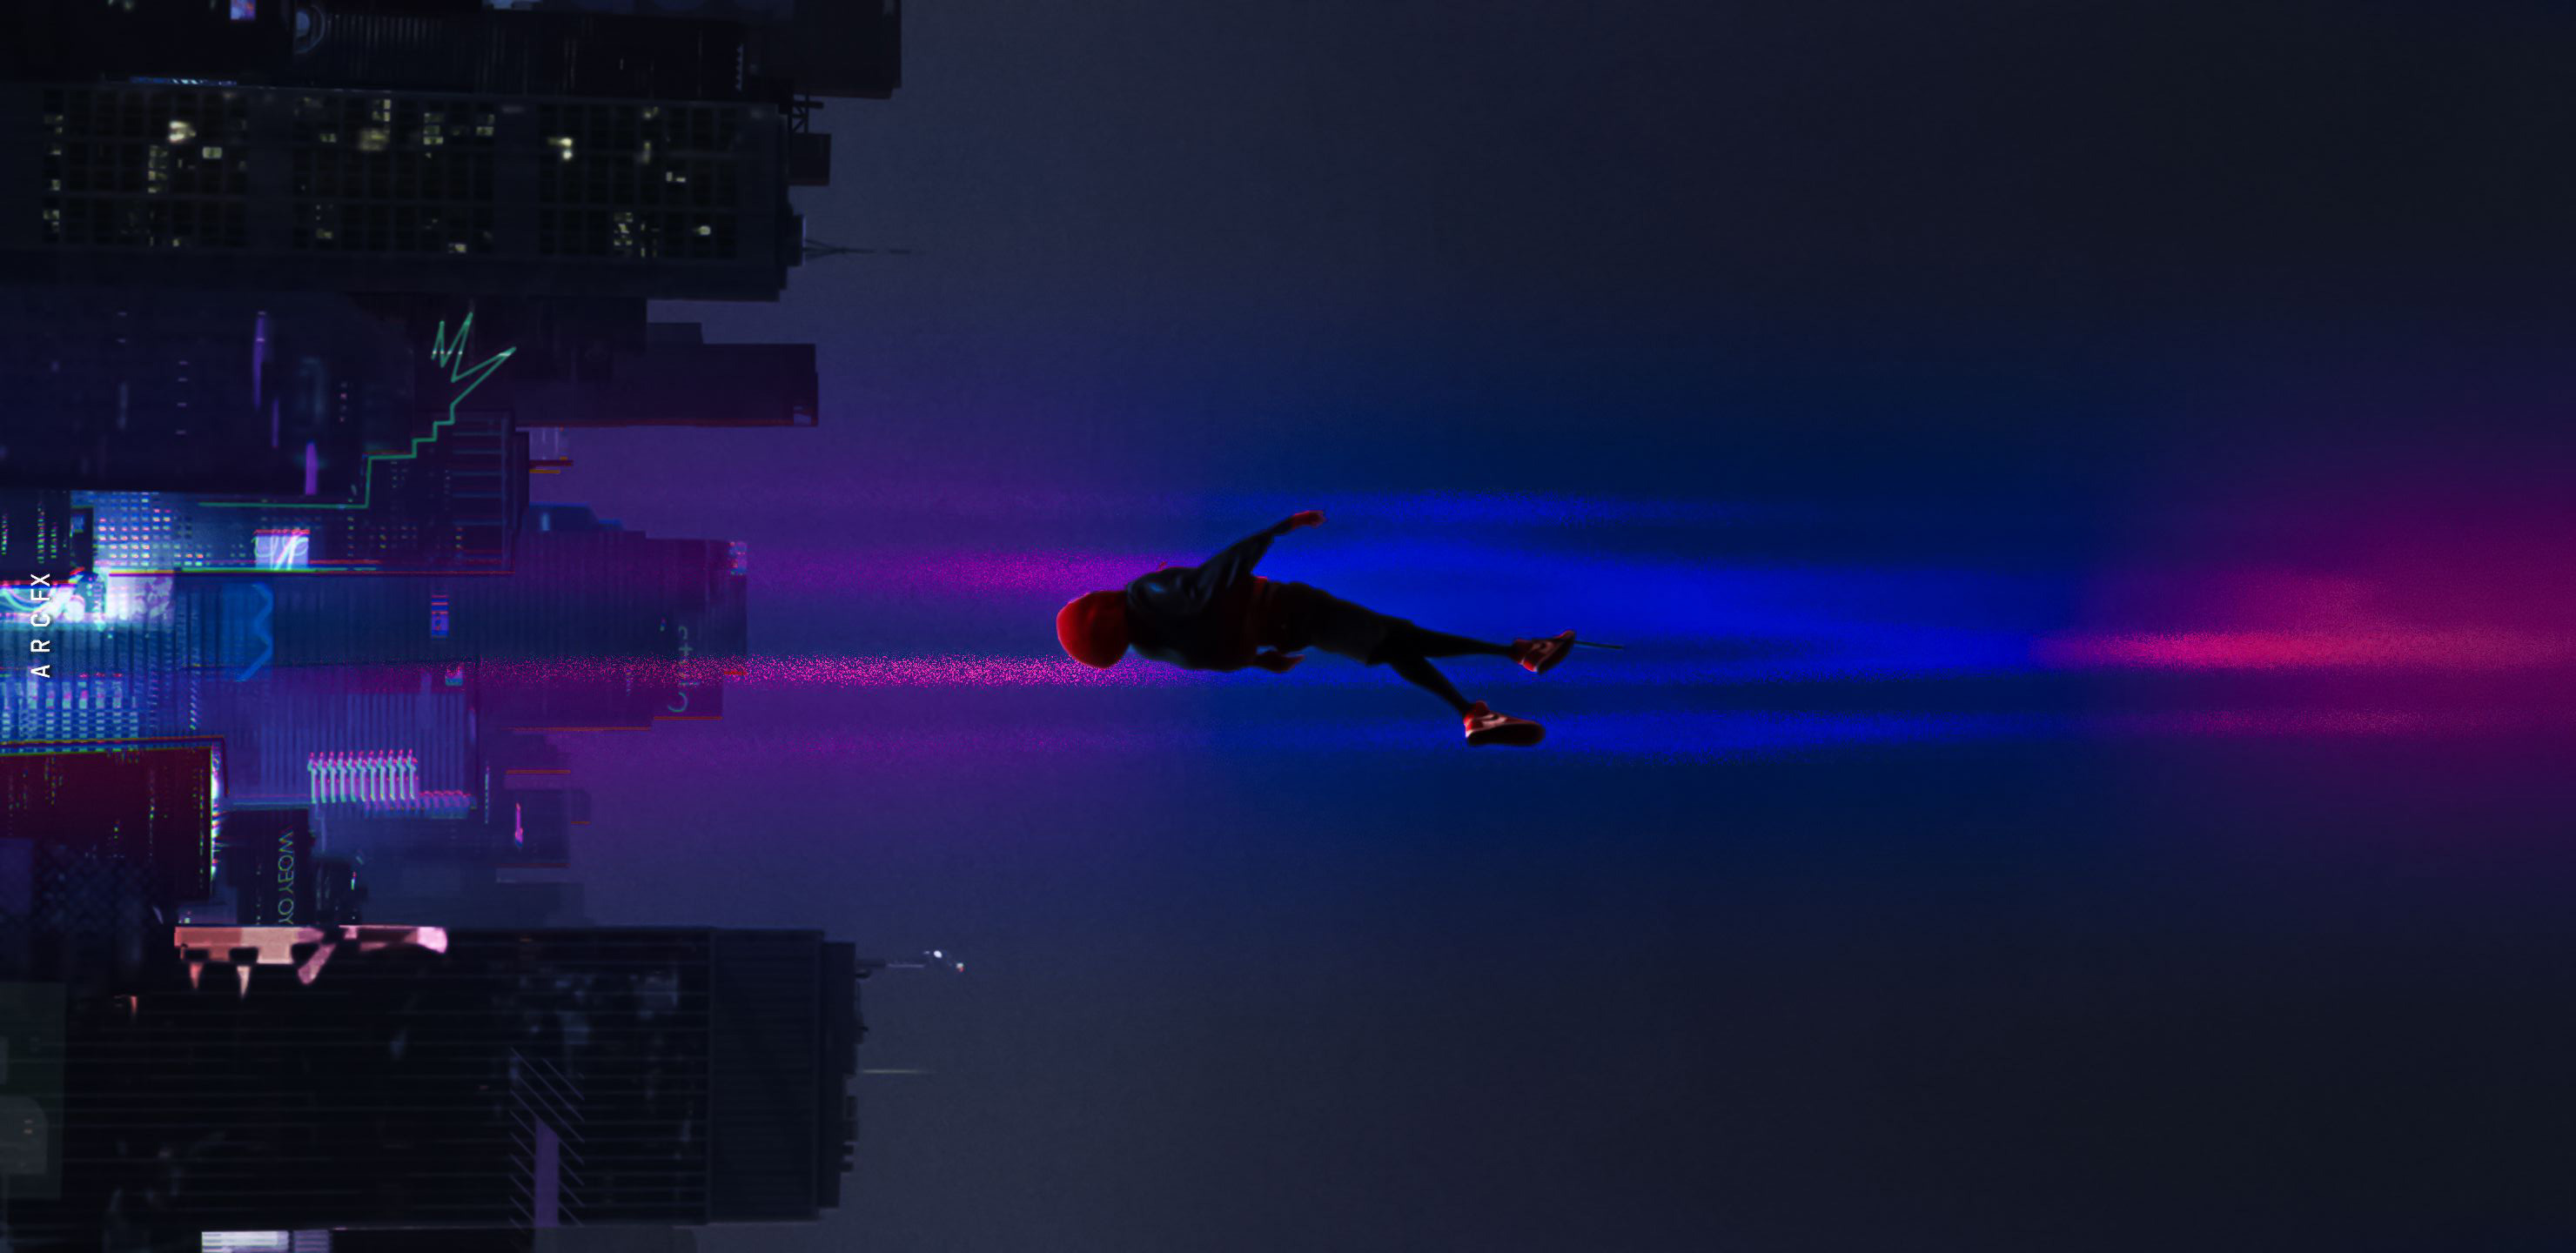 Spiderman Into The Spider Verse Movie 2018 Art Hd Movies 4k